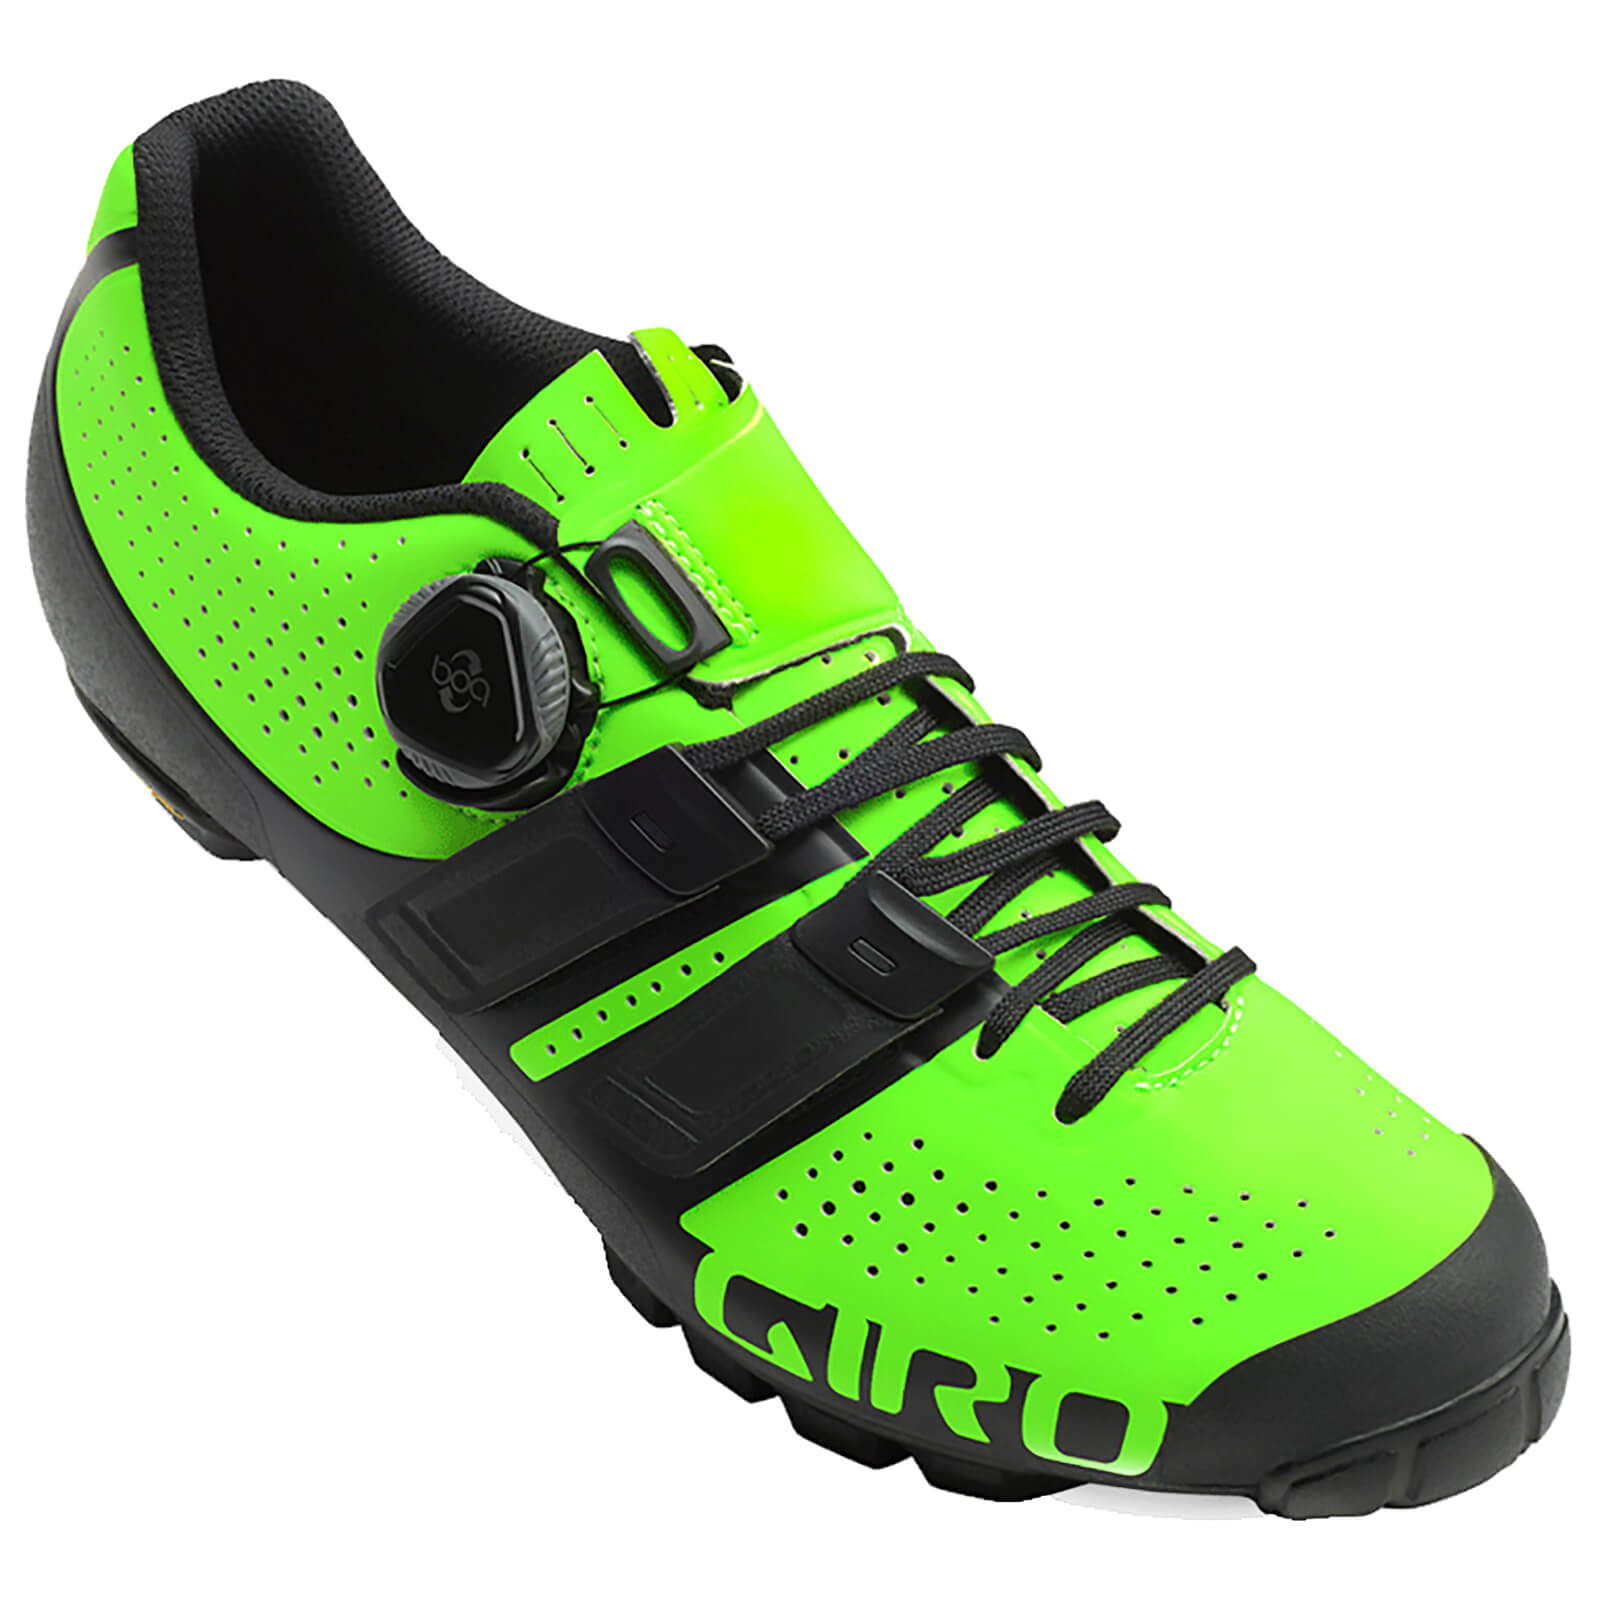 Giro Techlace MTB Cycling Shoes - Lime/Black